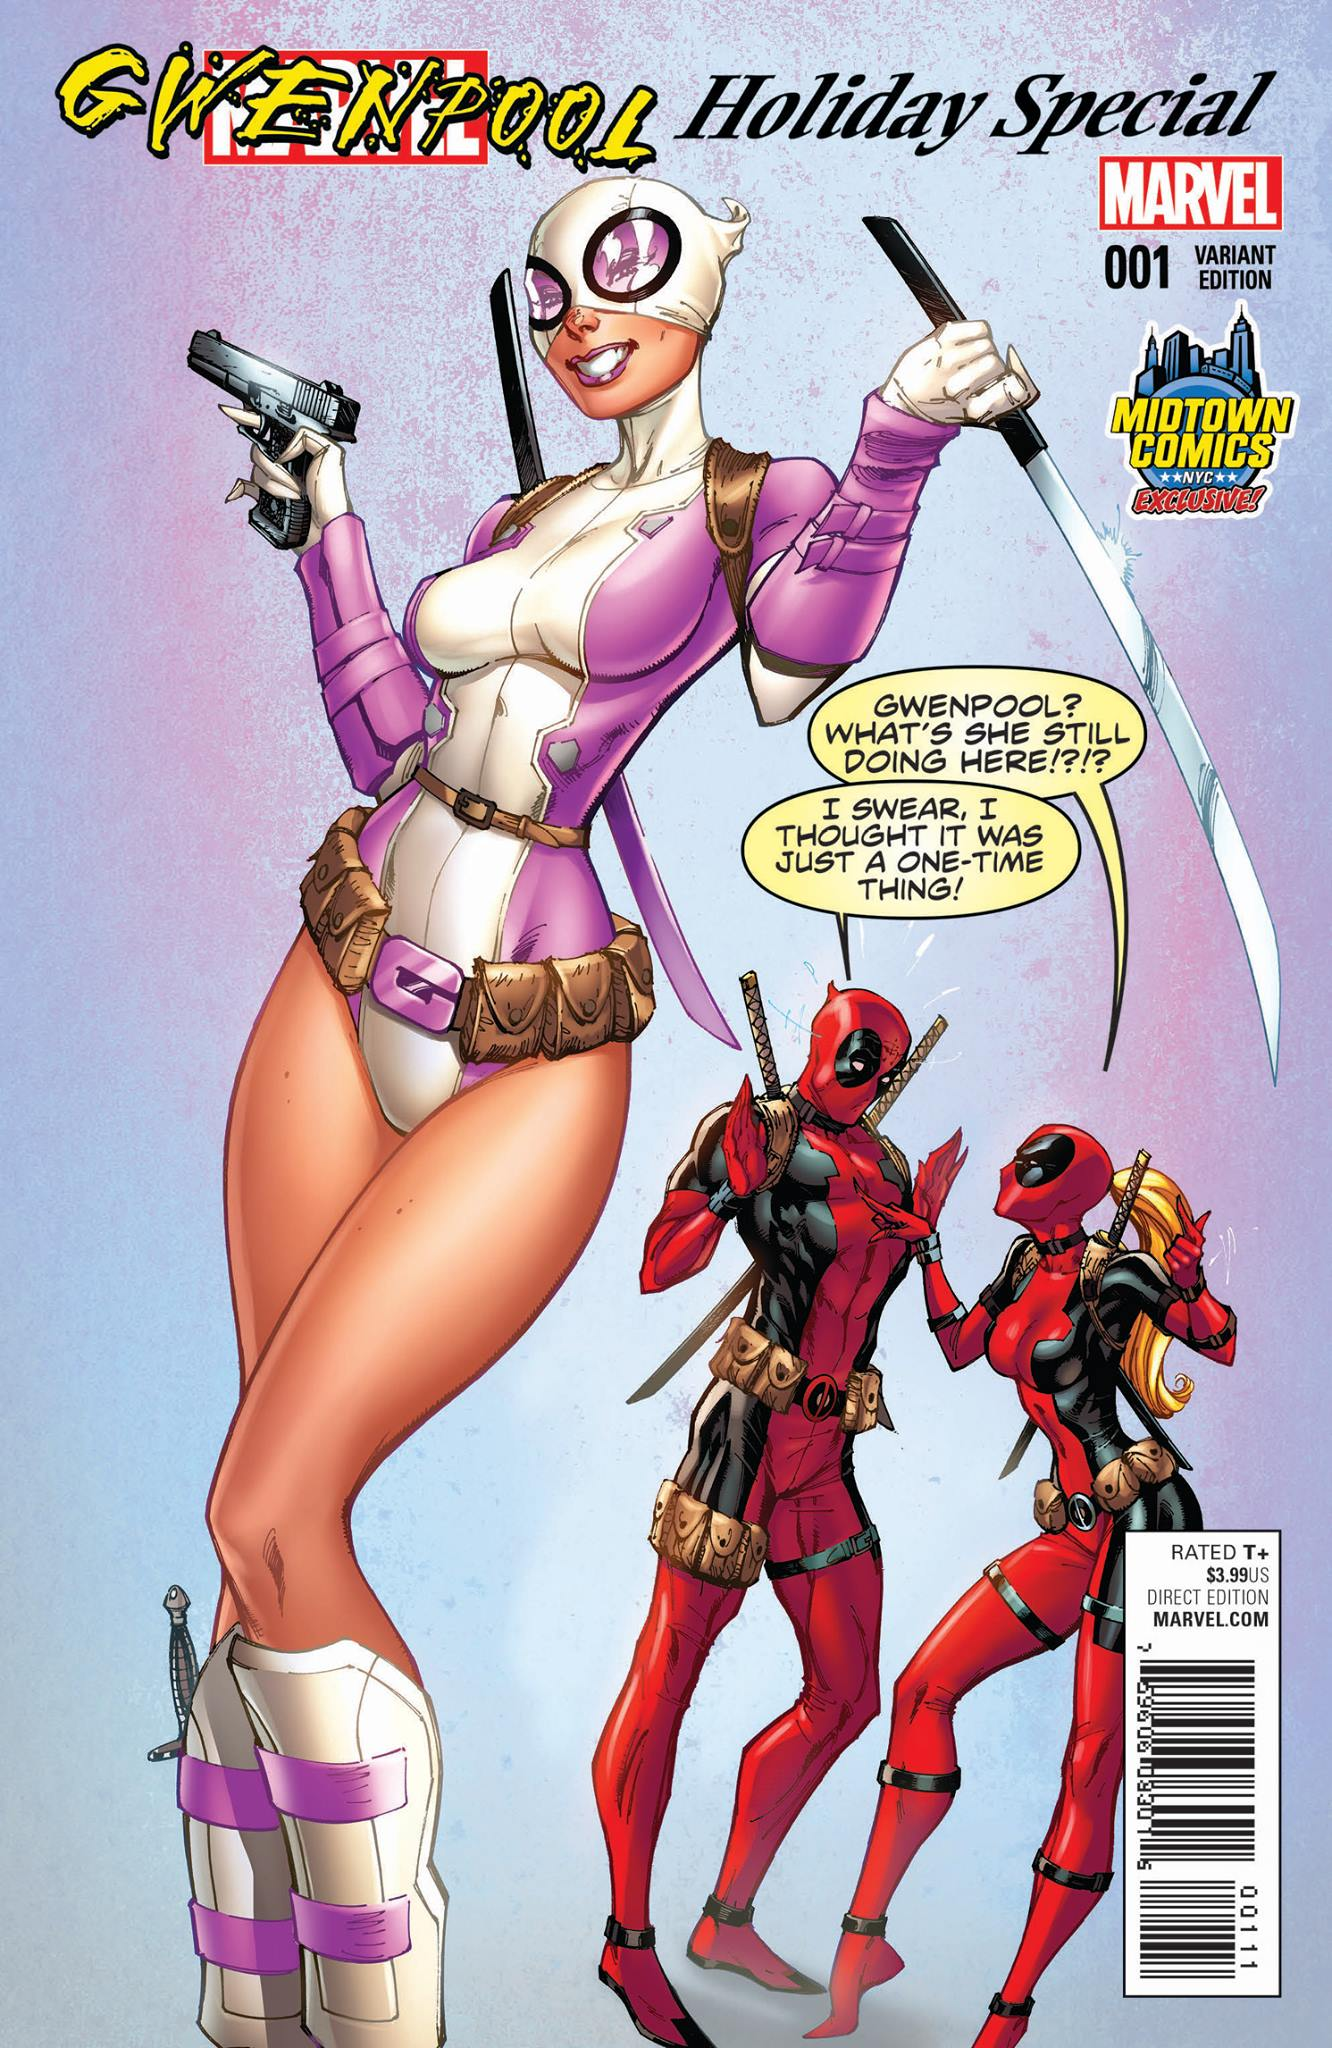 Gwenpool: Holiday Special 0001g Midtown Comics Variant